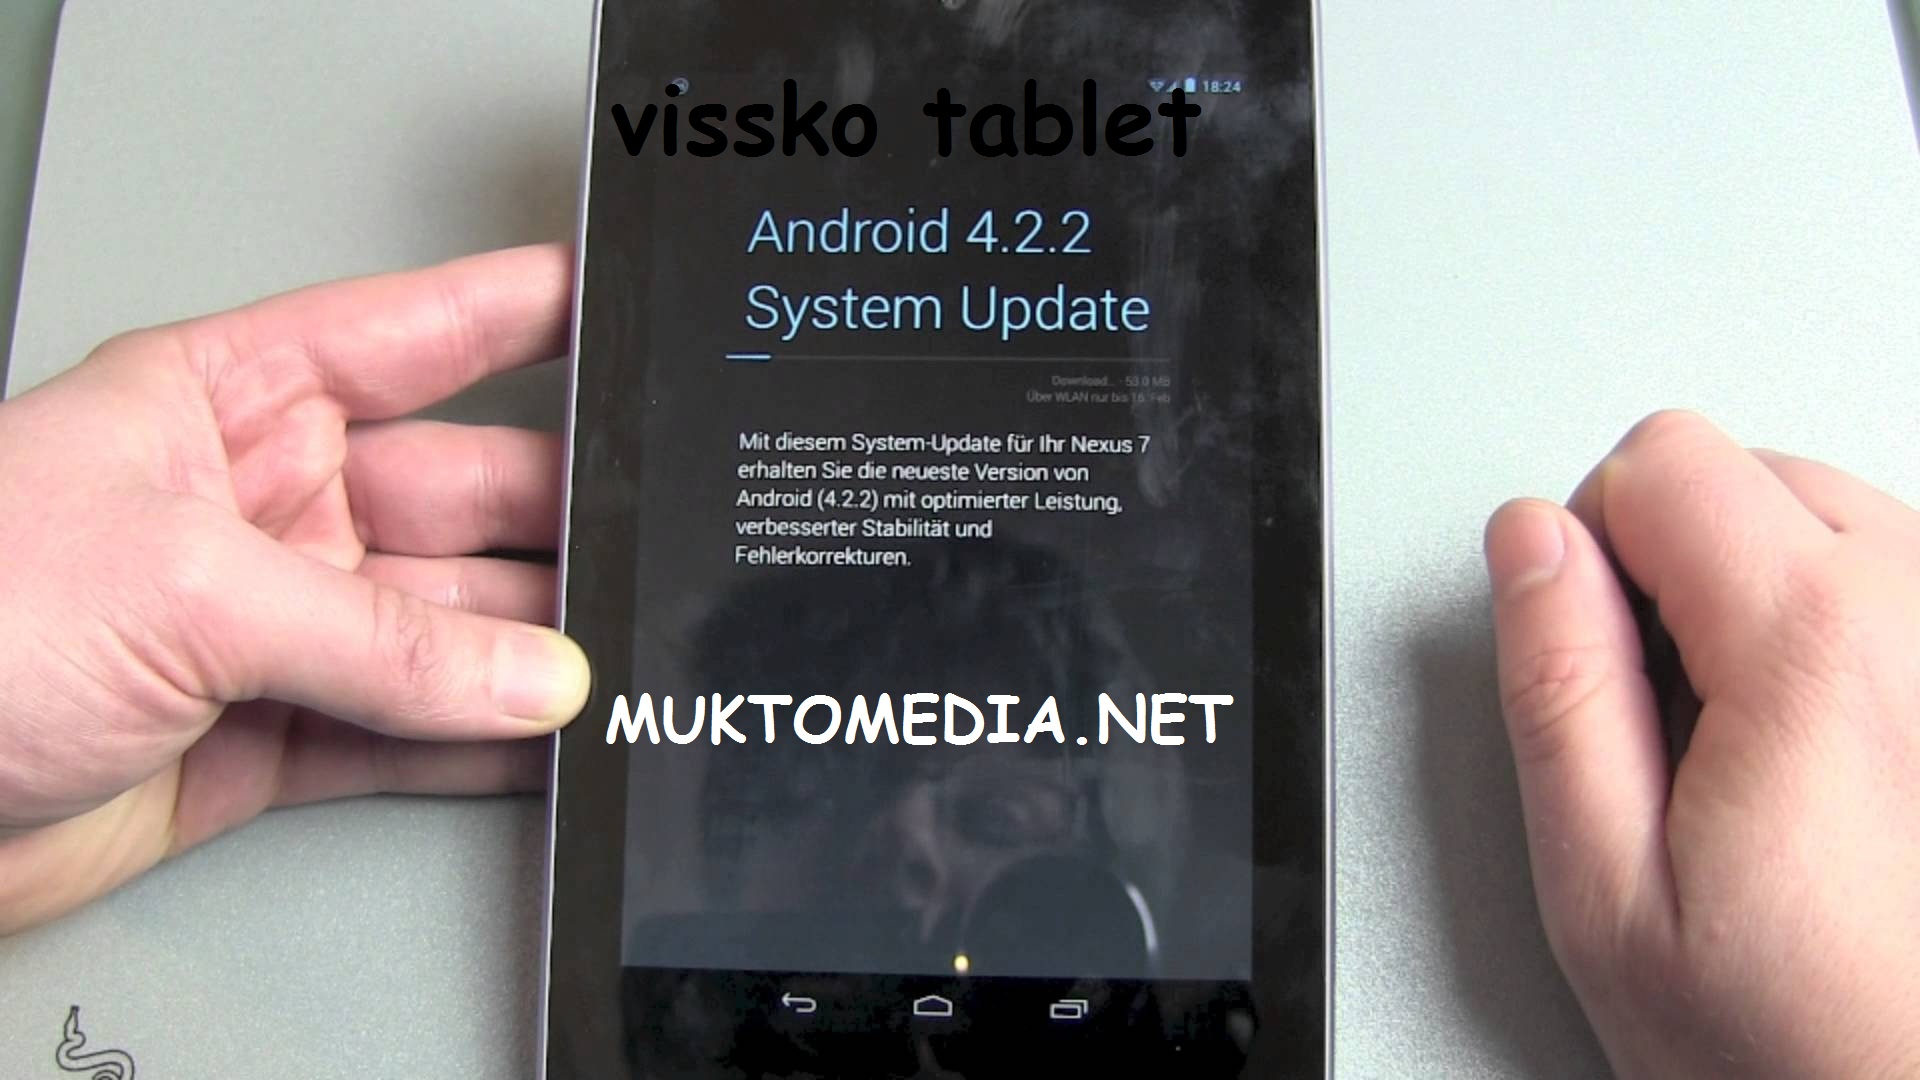 vissko tablet